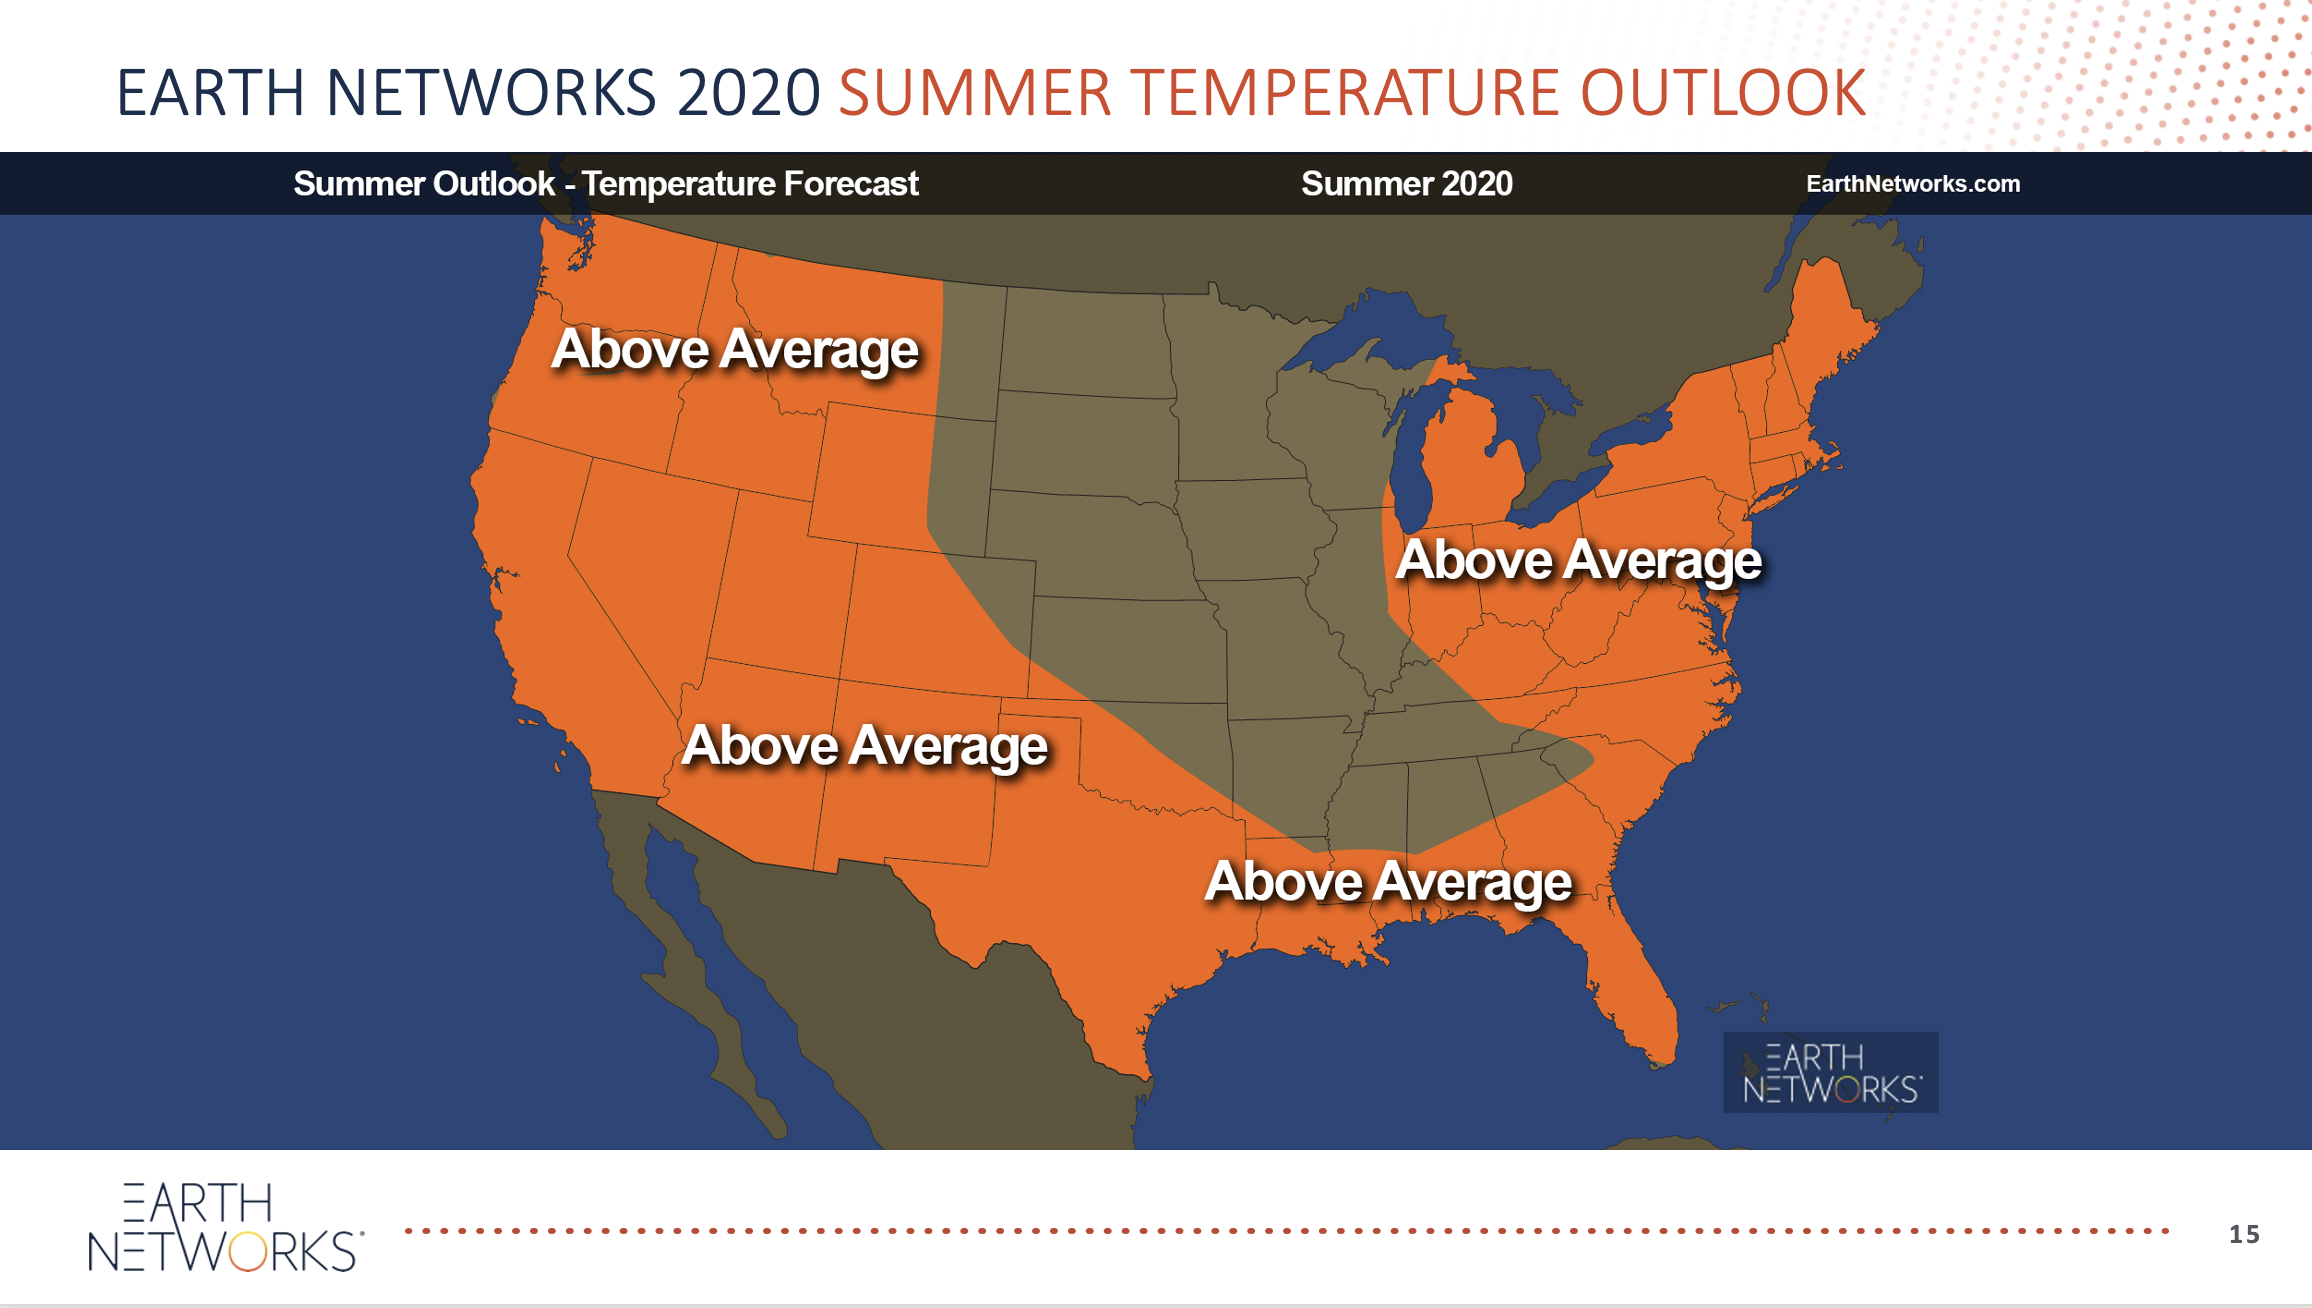 Earth Networks 2020 Summer Temperature Outlook